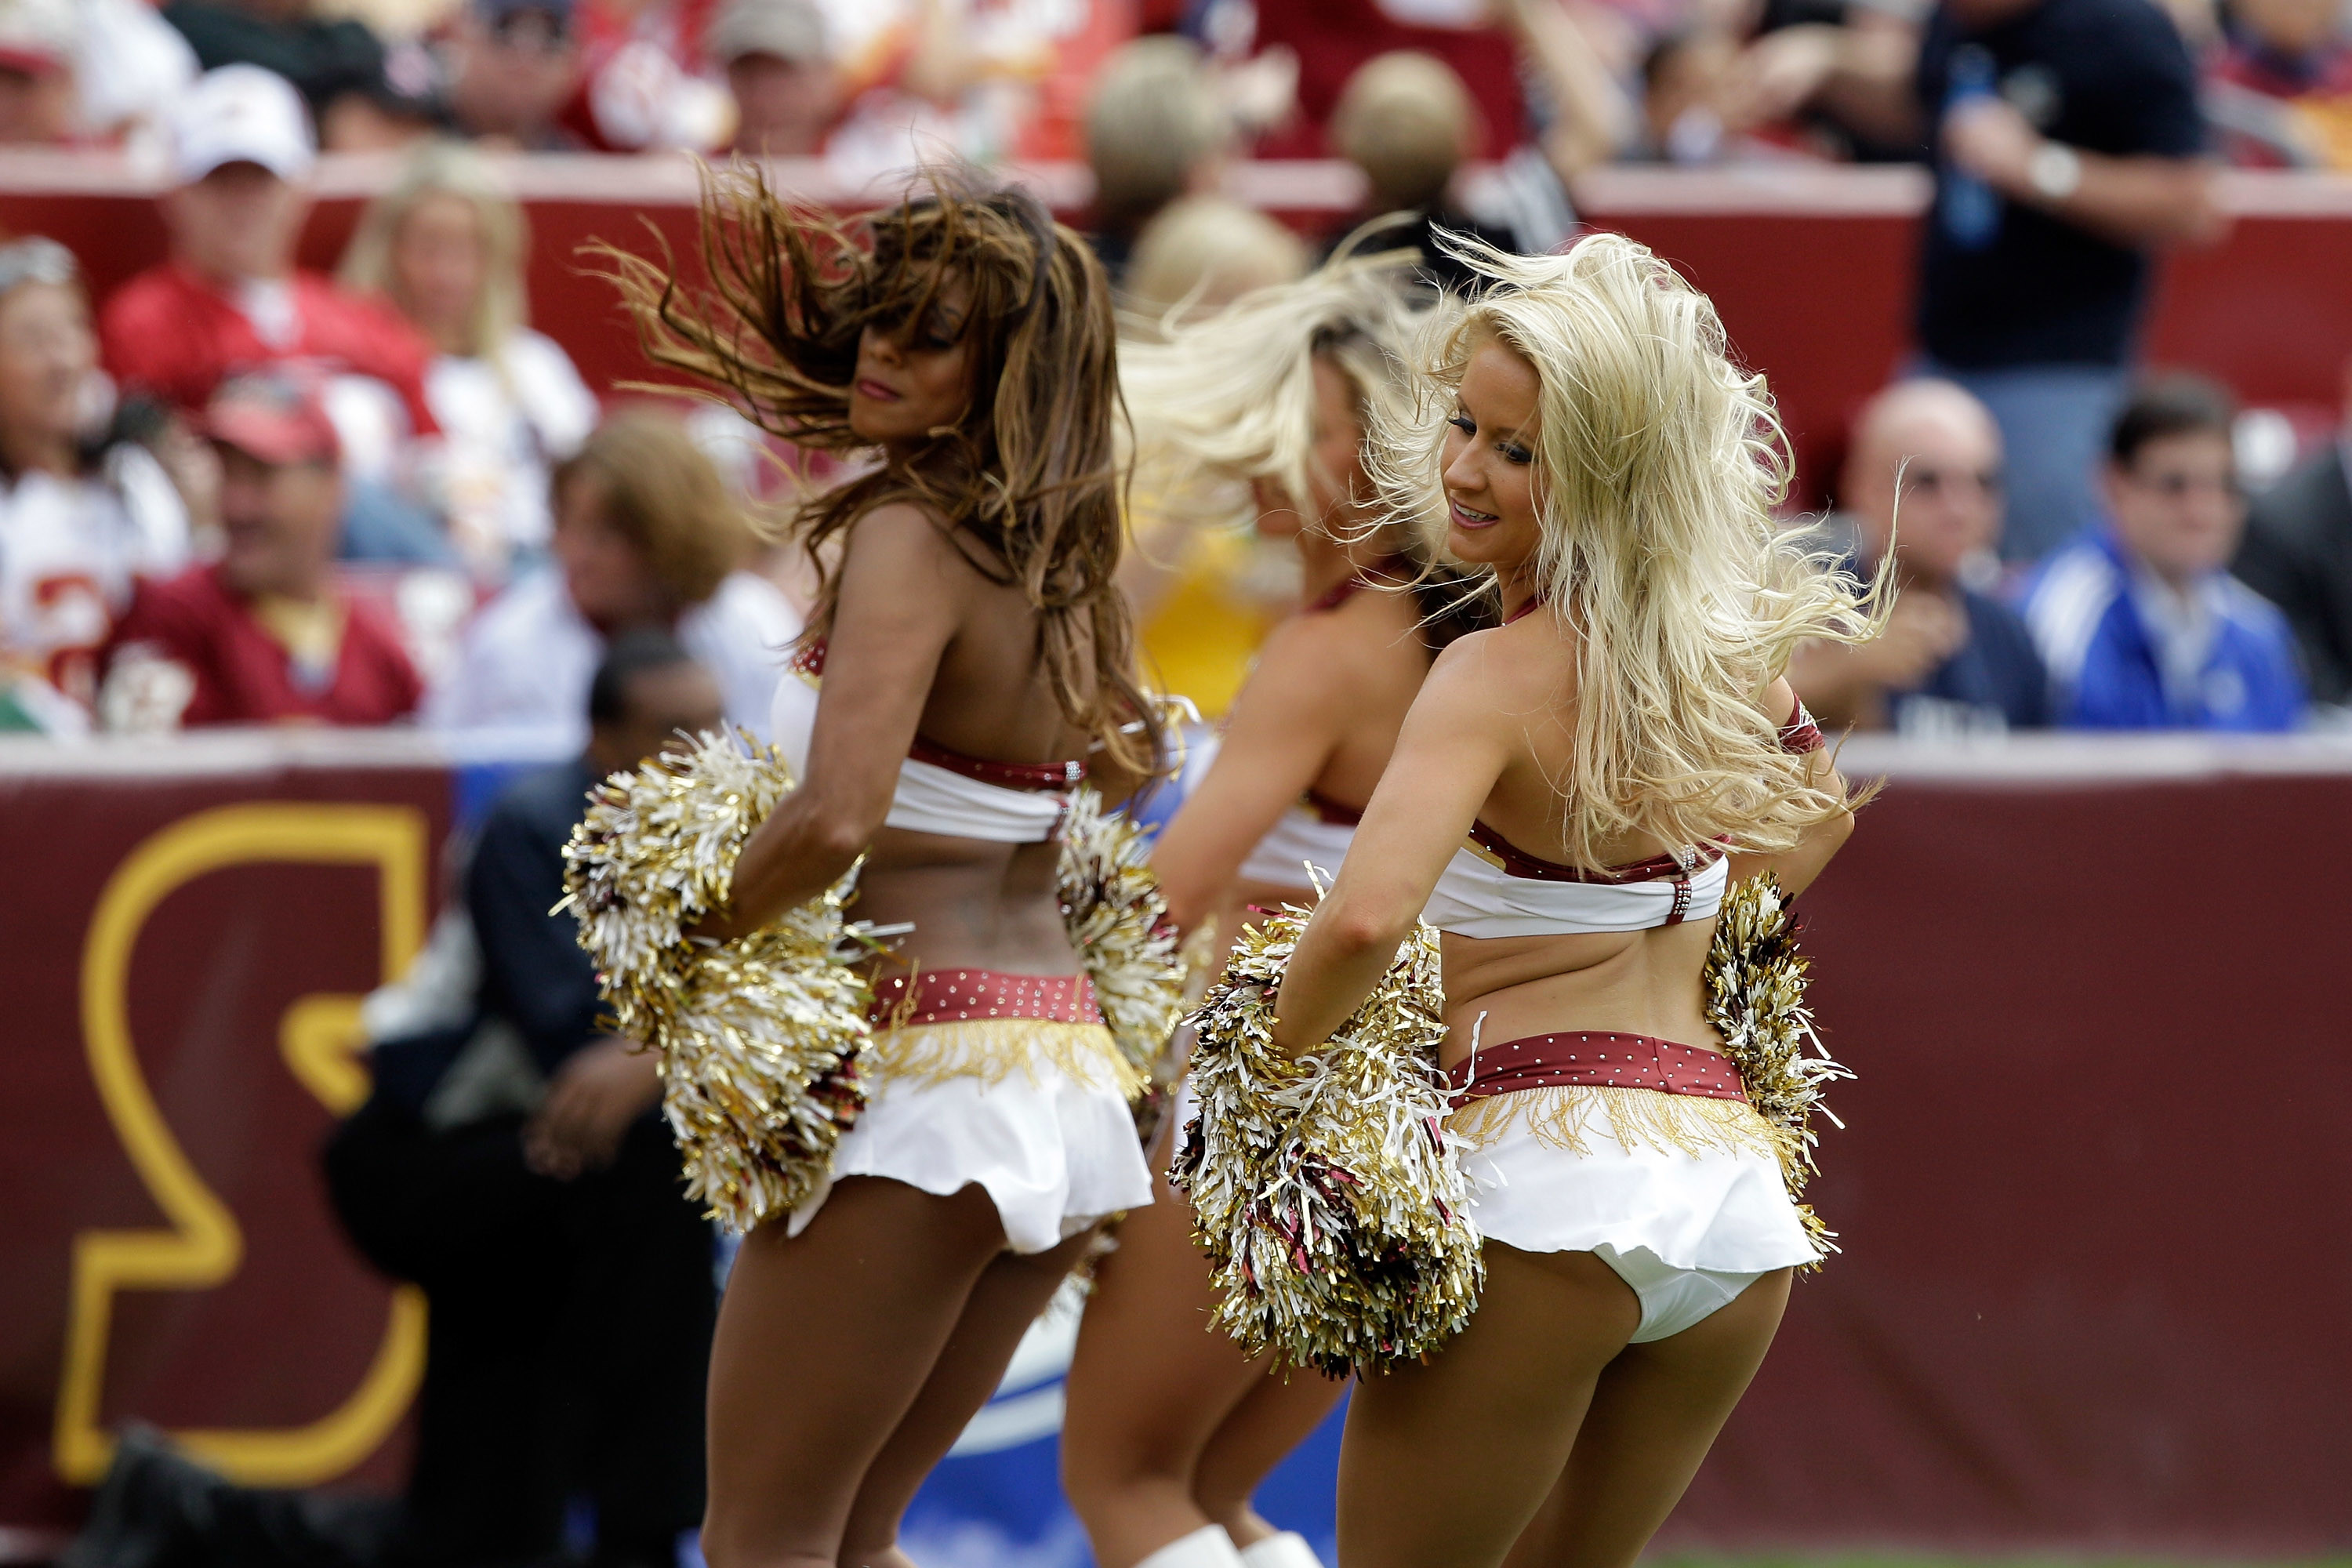 3000x2000 Arizona Cardinals Cheerleaders, Nfl Cheerleaders, Ice Girls, Washington  Redskins. arizona cardinals cheerleaders wallpaper